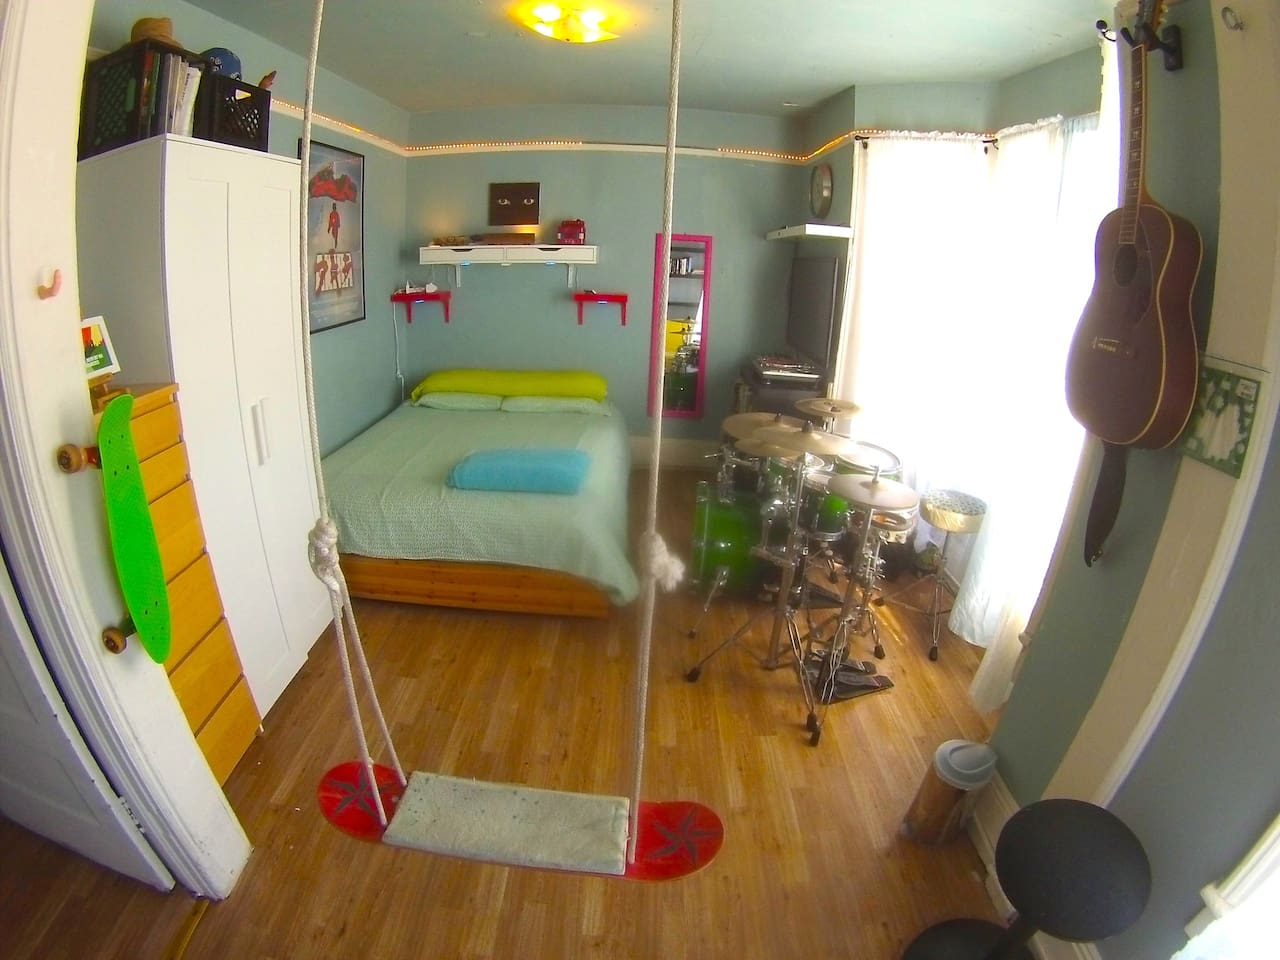 Double Bed, some storage, swing and Drum kit